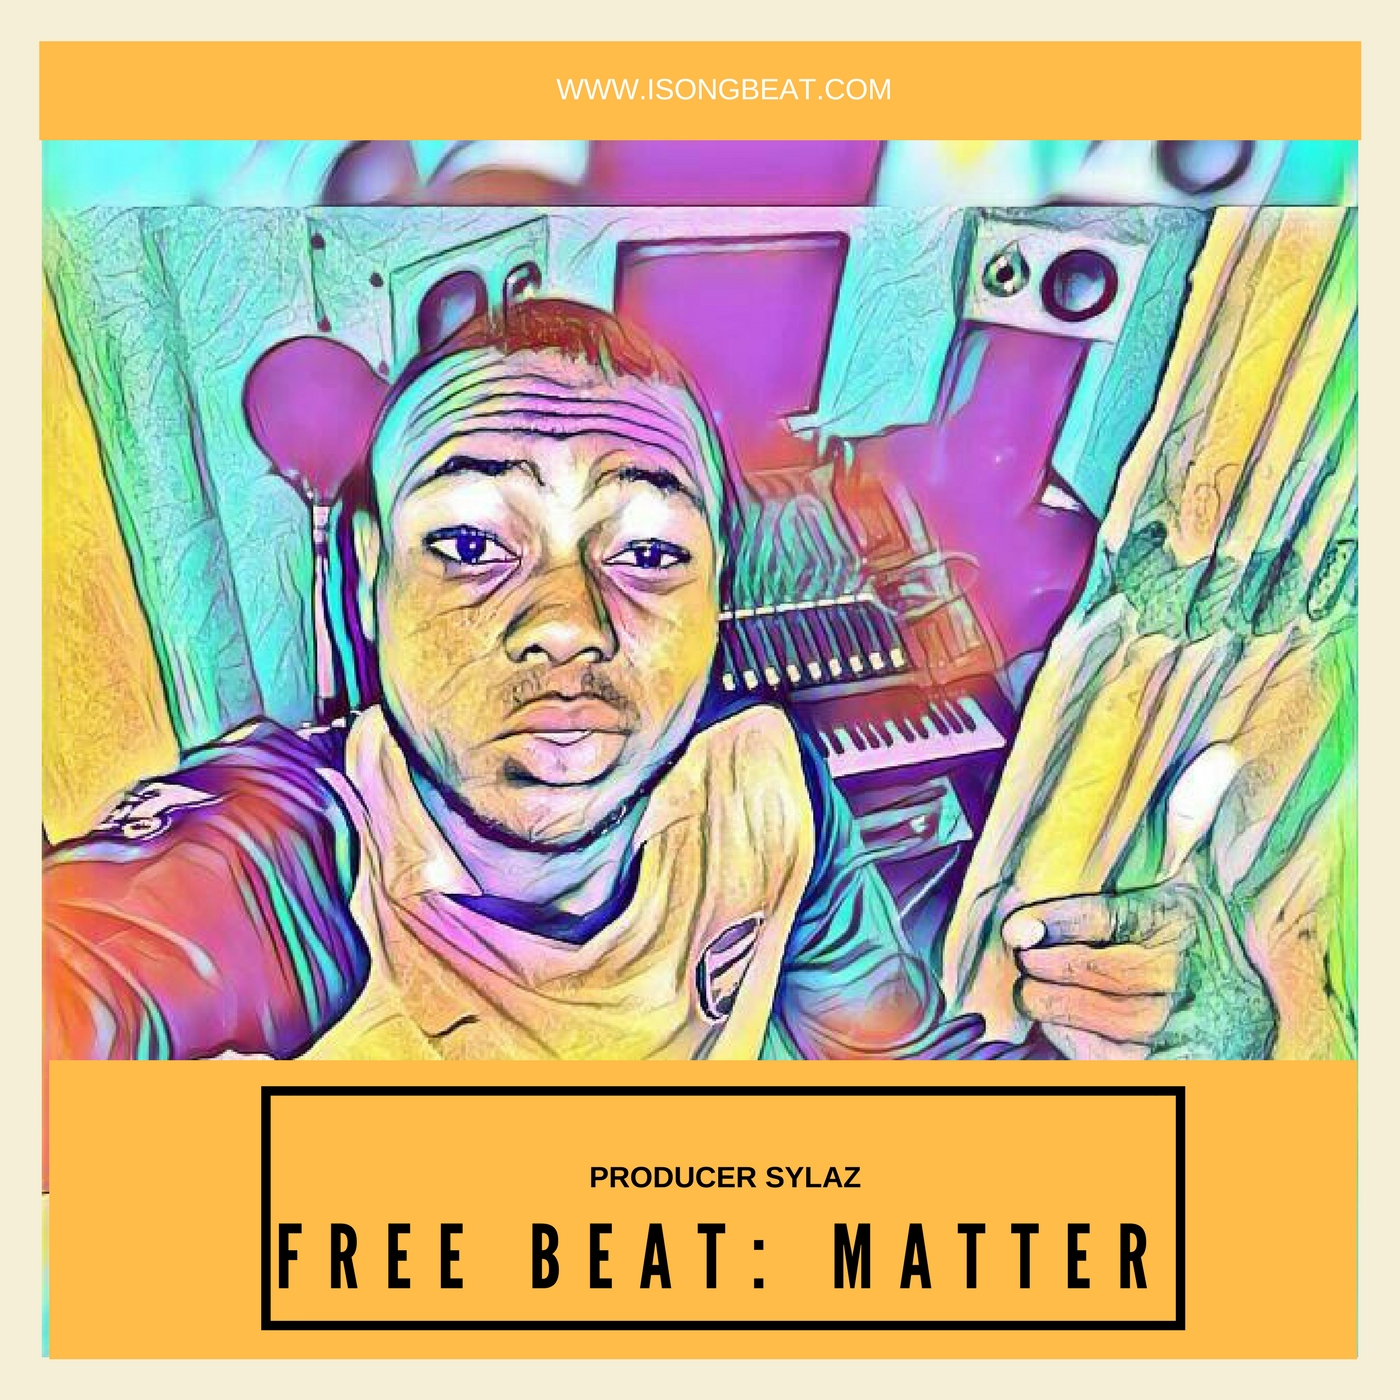 Free Beat: Matter (Producd by Sylaz) - ISONG BEATS